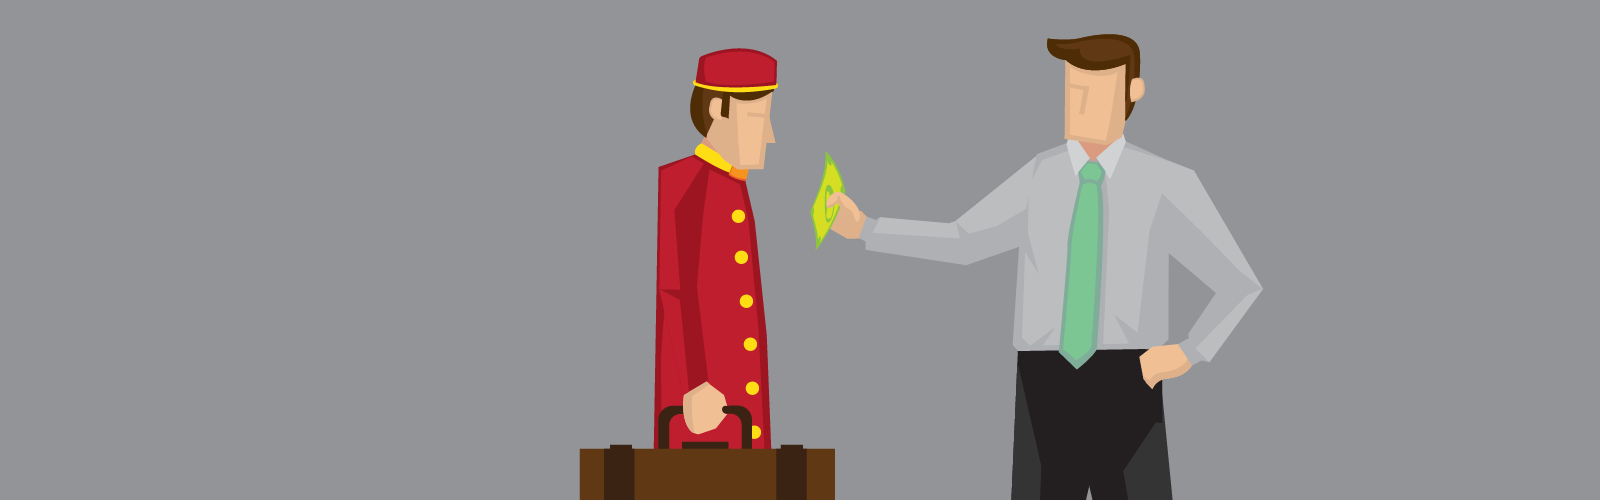 bell boy being tipped by business man (bs114758126)_1600x500.png